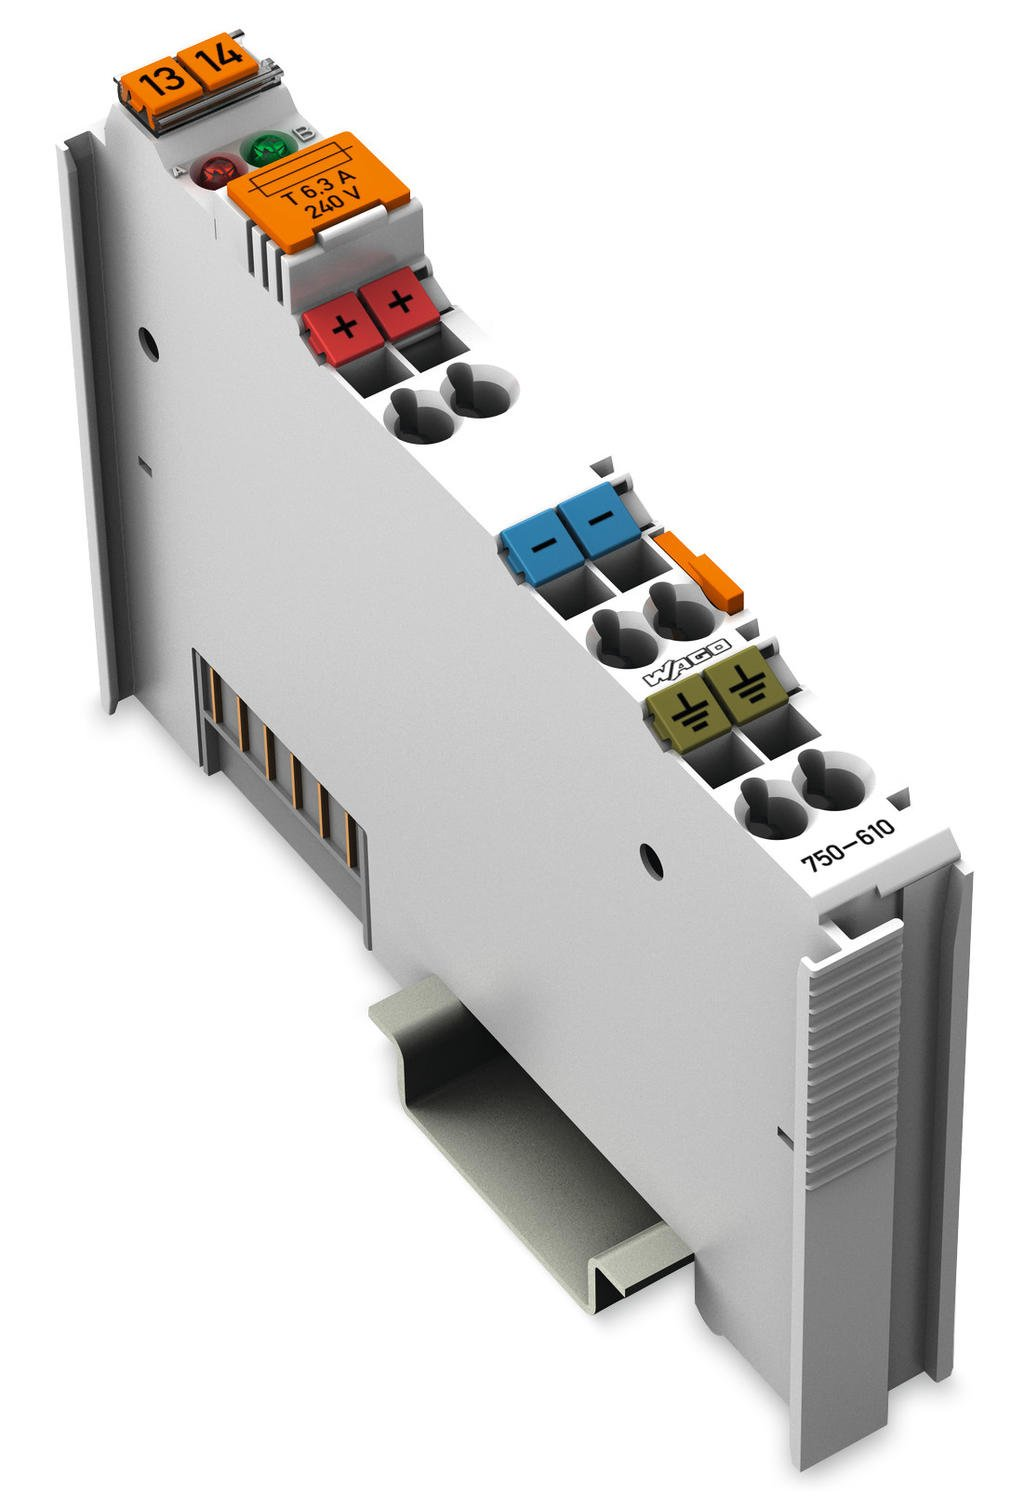 Wago Power Supply 750 610 Electrical Fuses Holders Circuit Breakers Din Rail Mounted 24 Vdc Fuse Holder Diagnostics